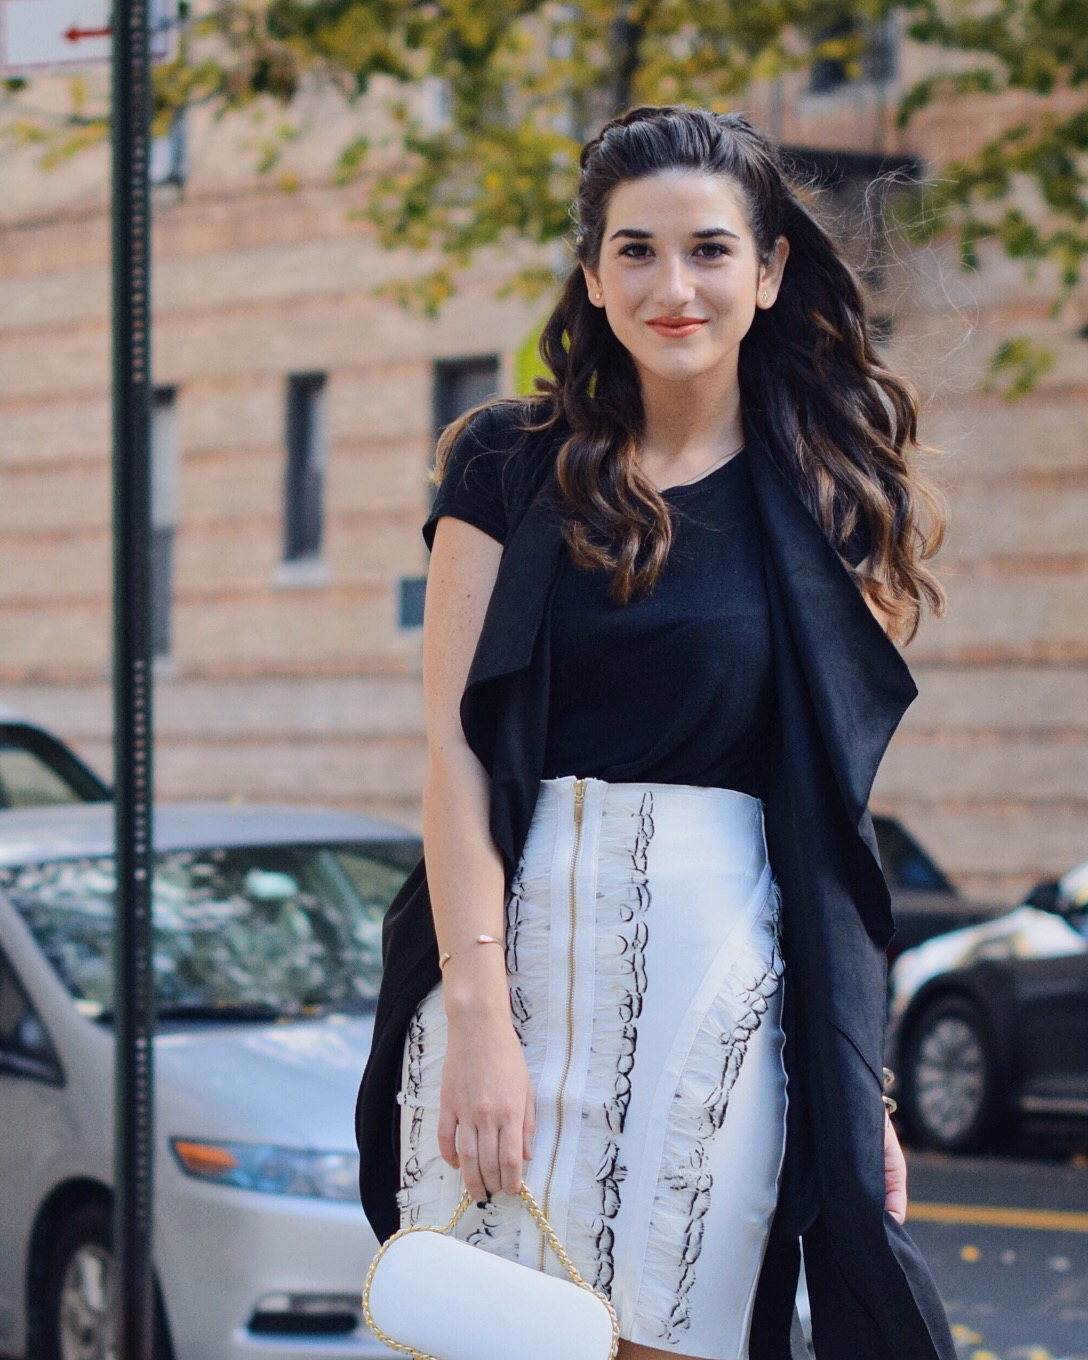 White Feather Skirt Long Black Vest Wow Couture Louboutins & Love Fashion Blog Esther Santer NYC Street Style Blogger Photoshoot Hairstyle Inspo Heels Gold Black Tee Zara Outfit OOTD Beauty Winter Fall Braid Girl Women Model Erin Dana White Minaudiere.JPG